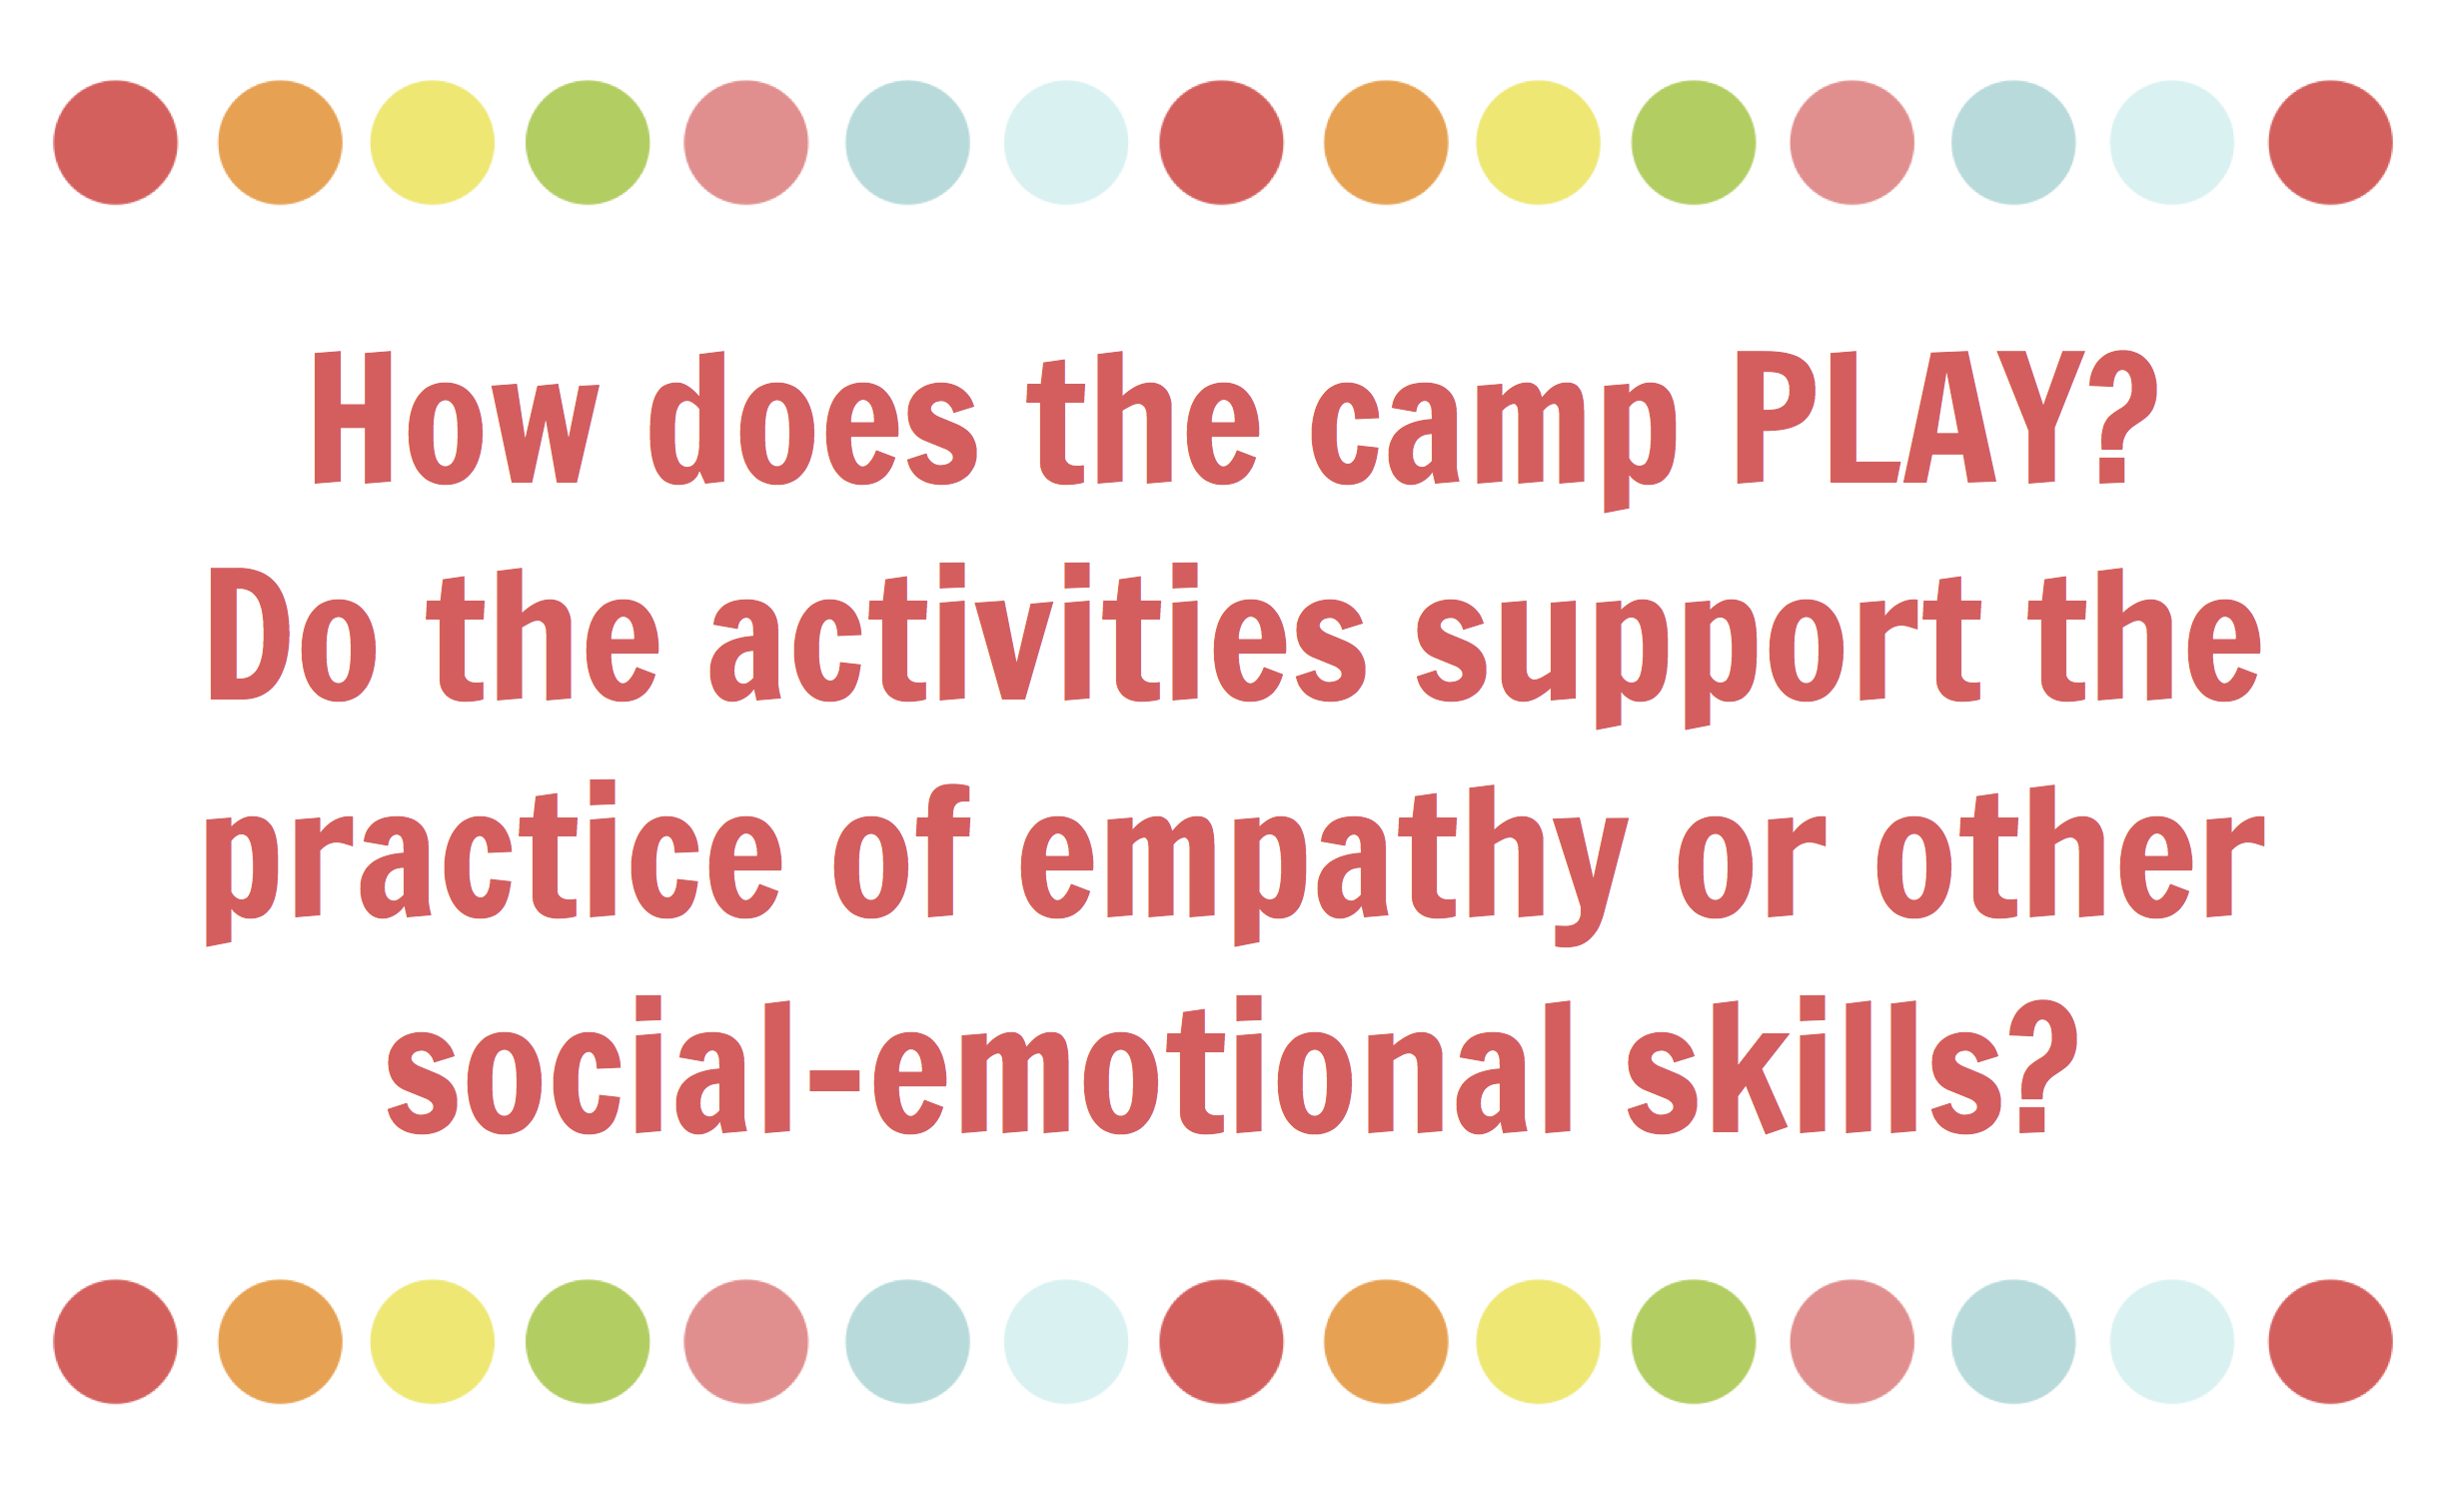 do the summer camp activities support the practice of empathy or other social-emotional skills